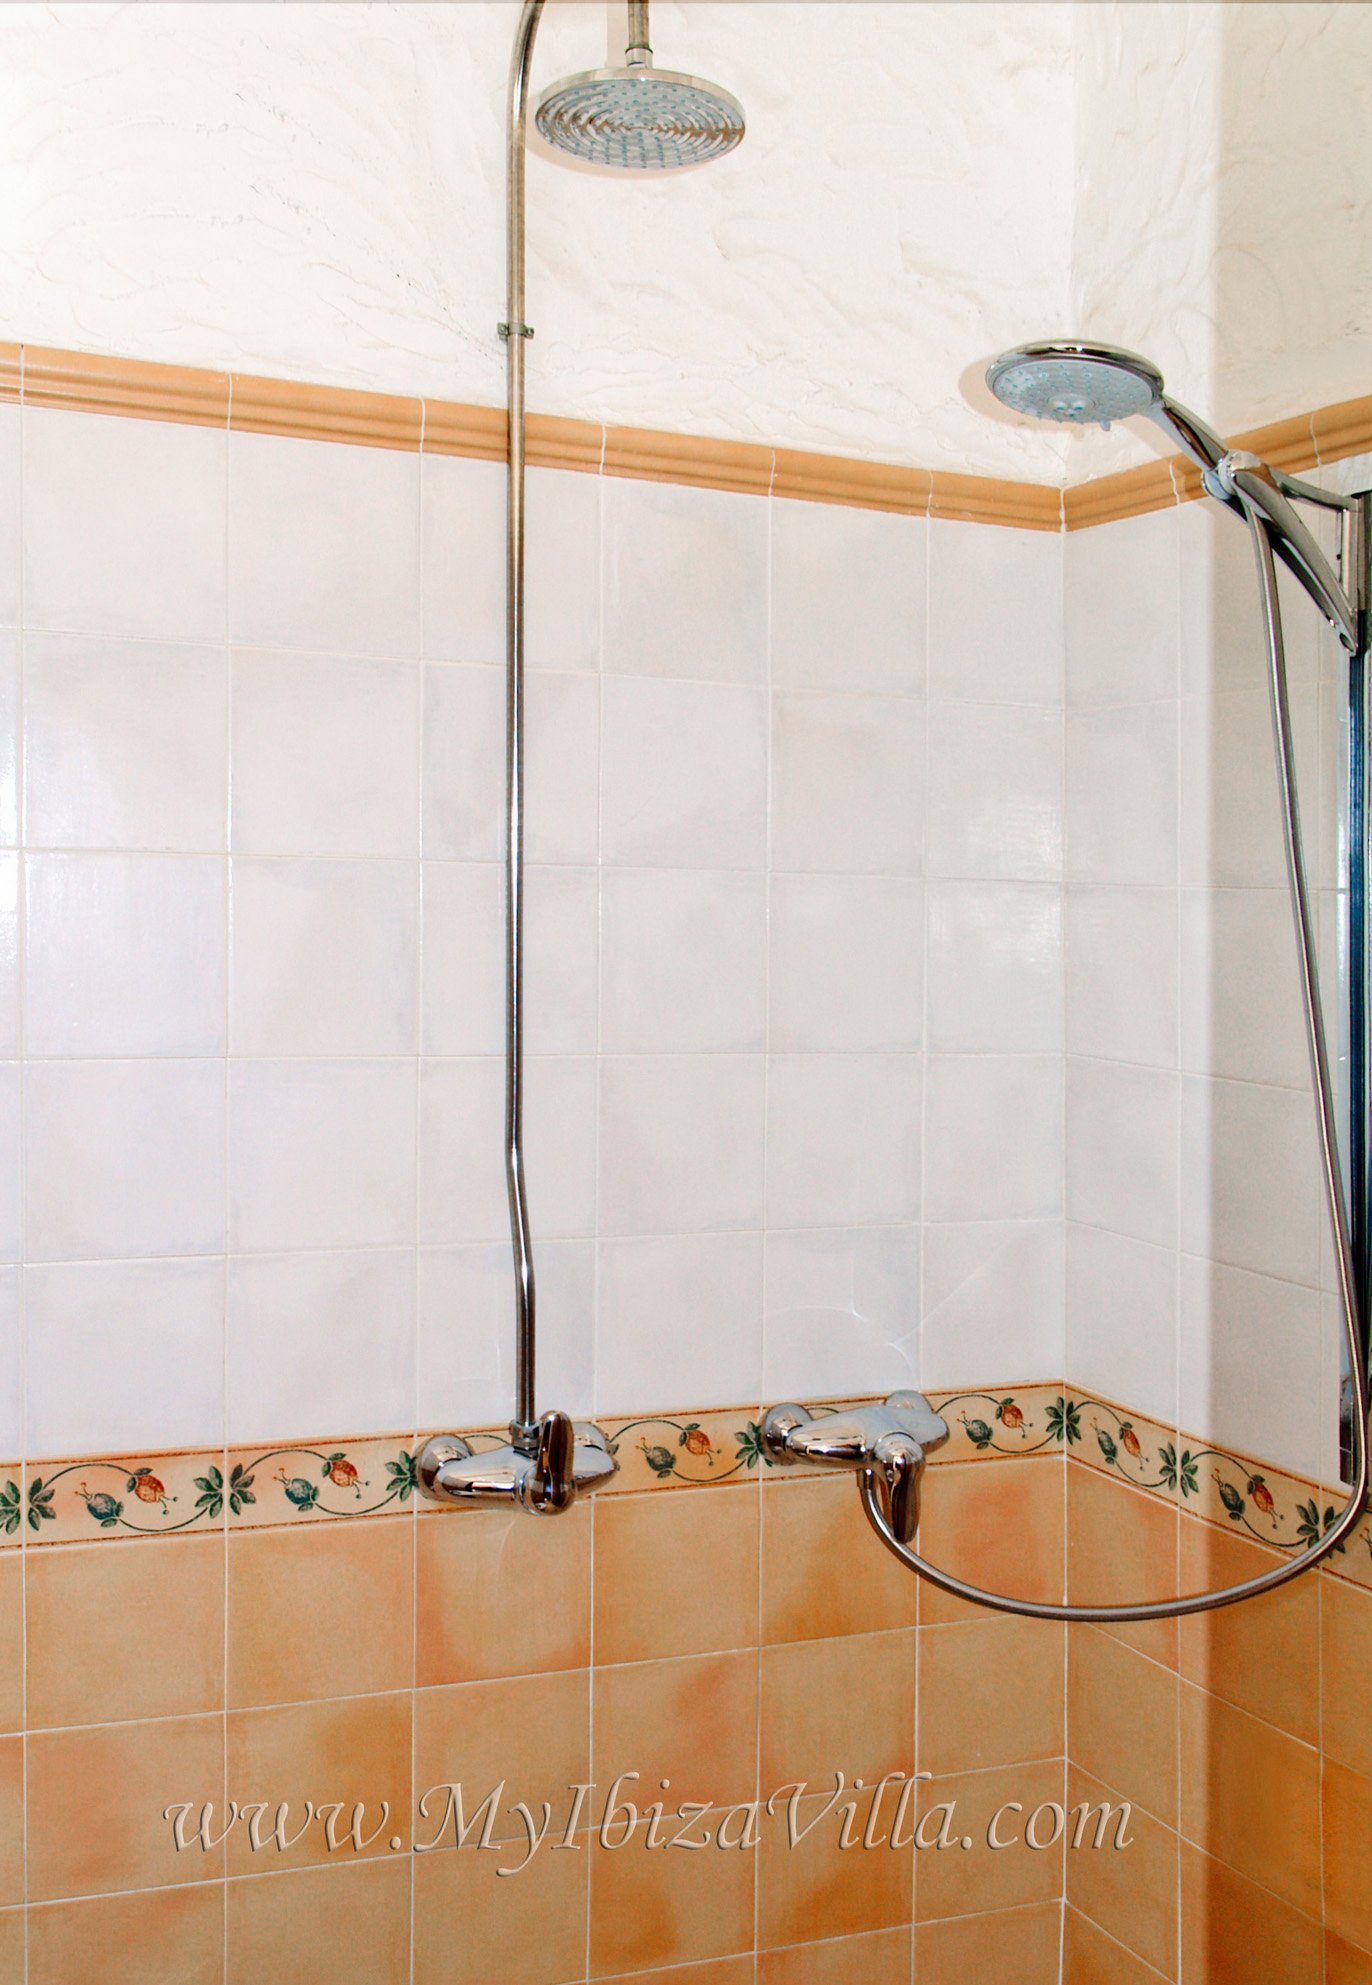 Twin shower room with rain-dance and massage-shower of this ibiza villa.